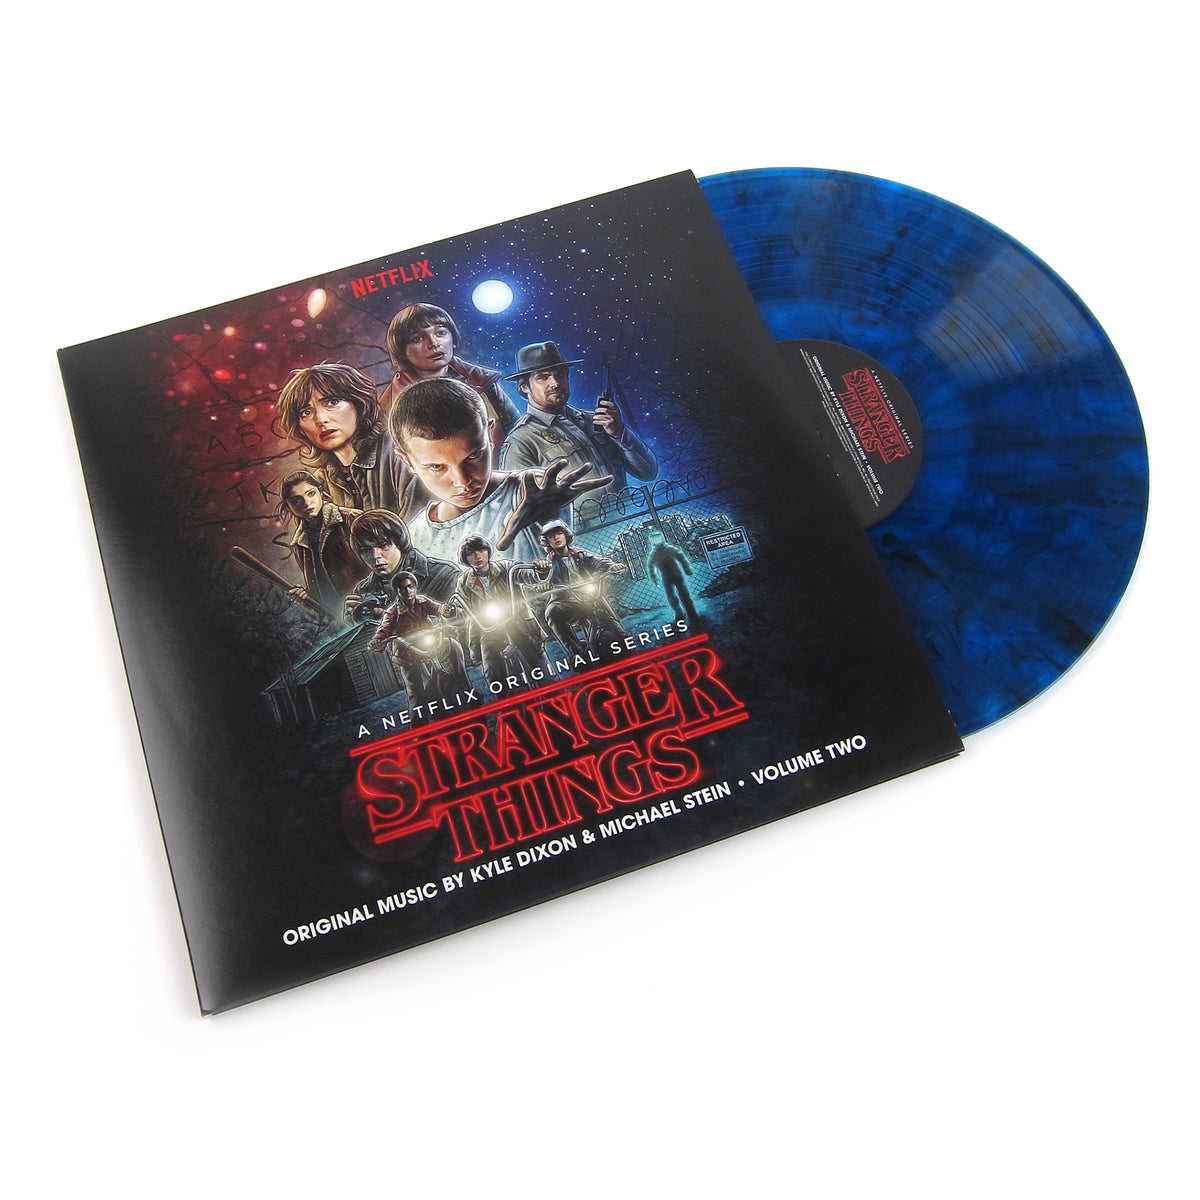 Kyle Dixon & Michael Stein: Stranger Things Vinyl LP Album Pack (Vol.1, Vol.2, Upside Down Blue Colored Vinyl)